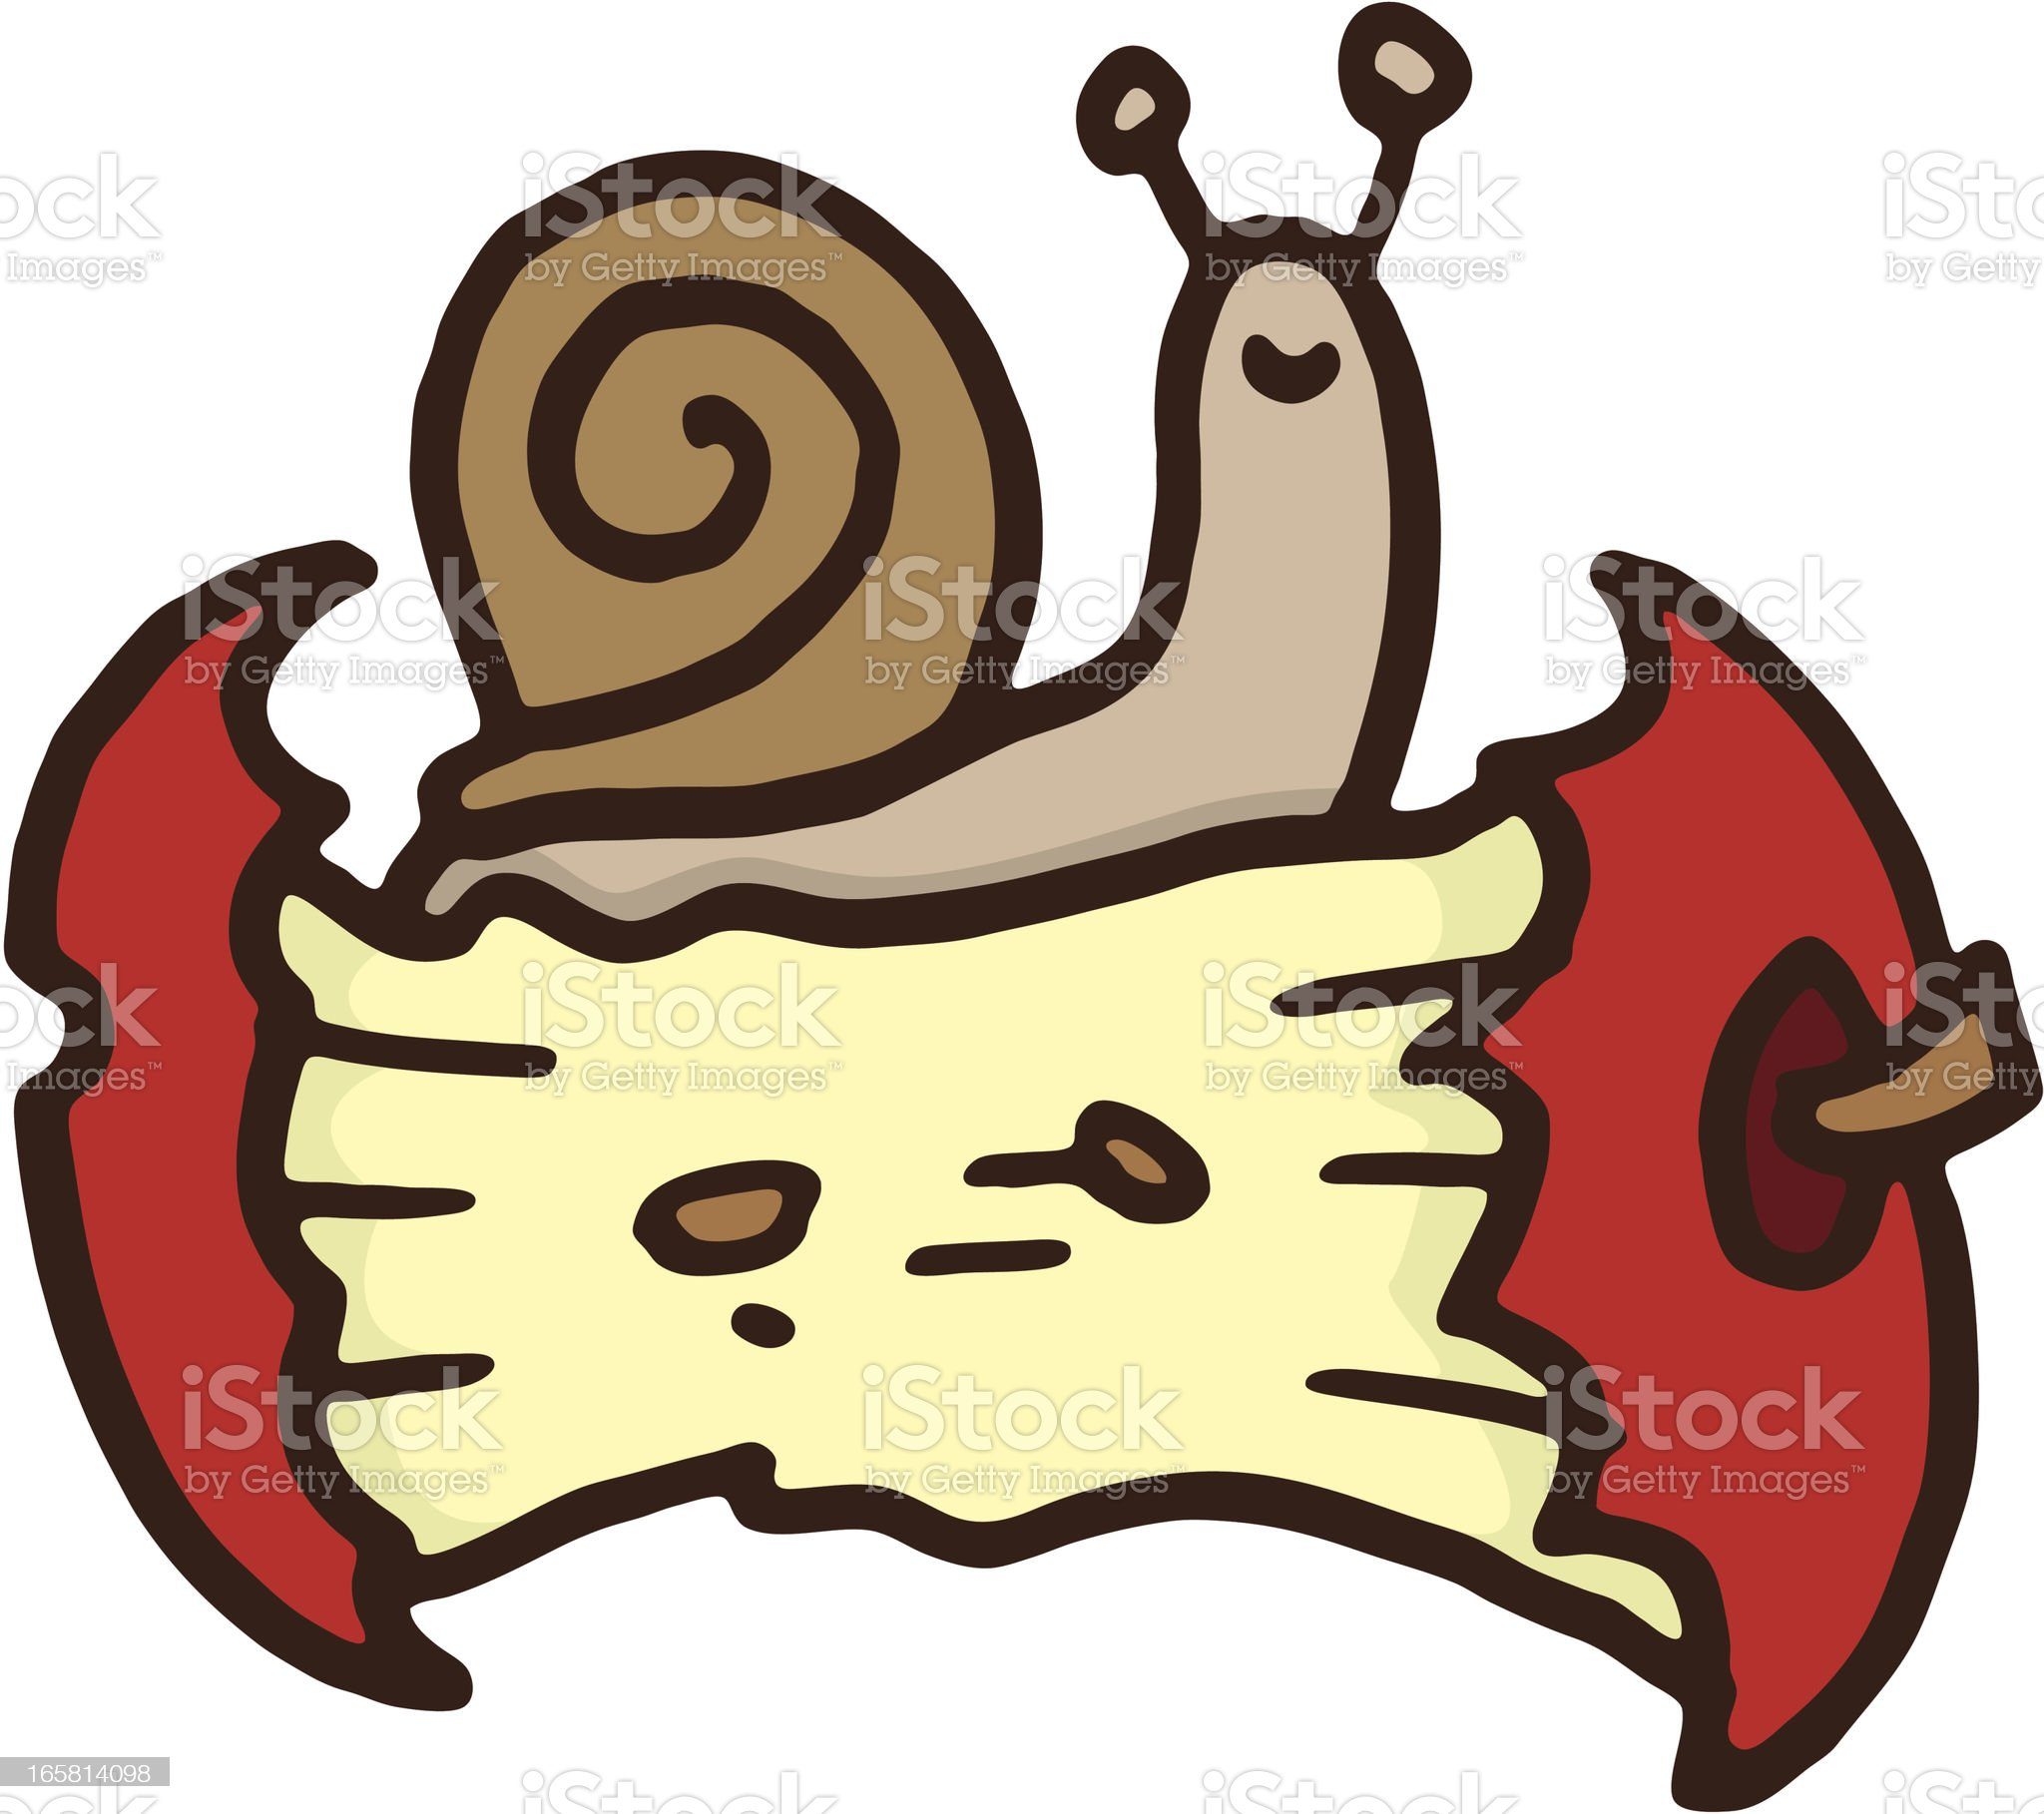 Snail on an apple core royalty-free stock vector art